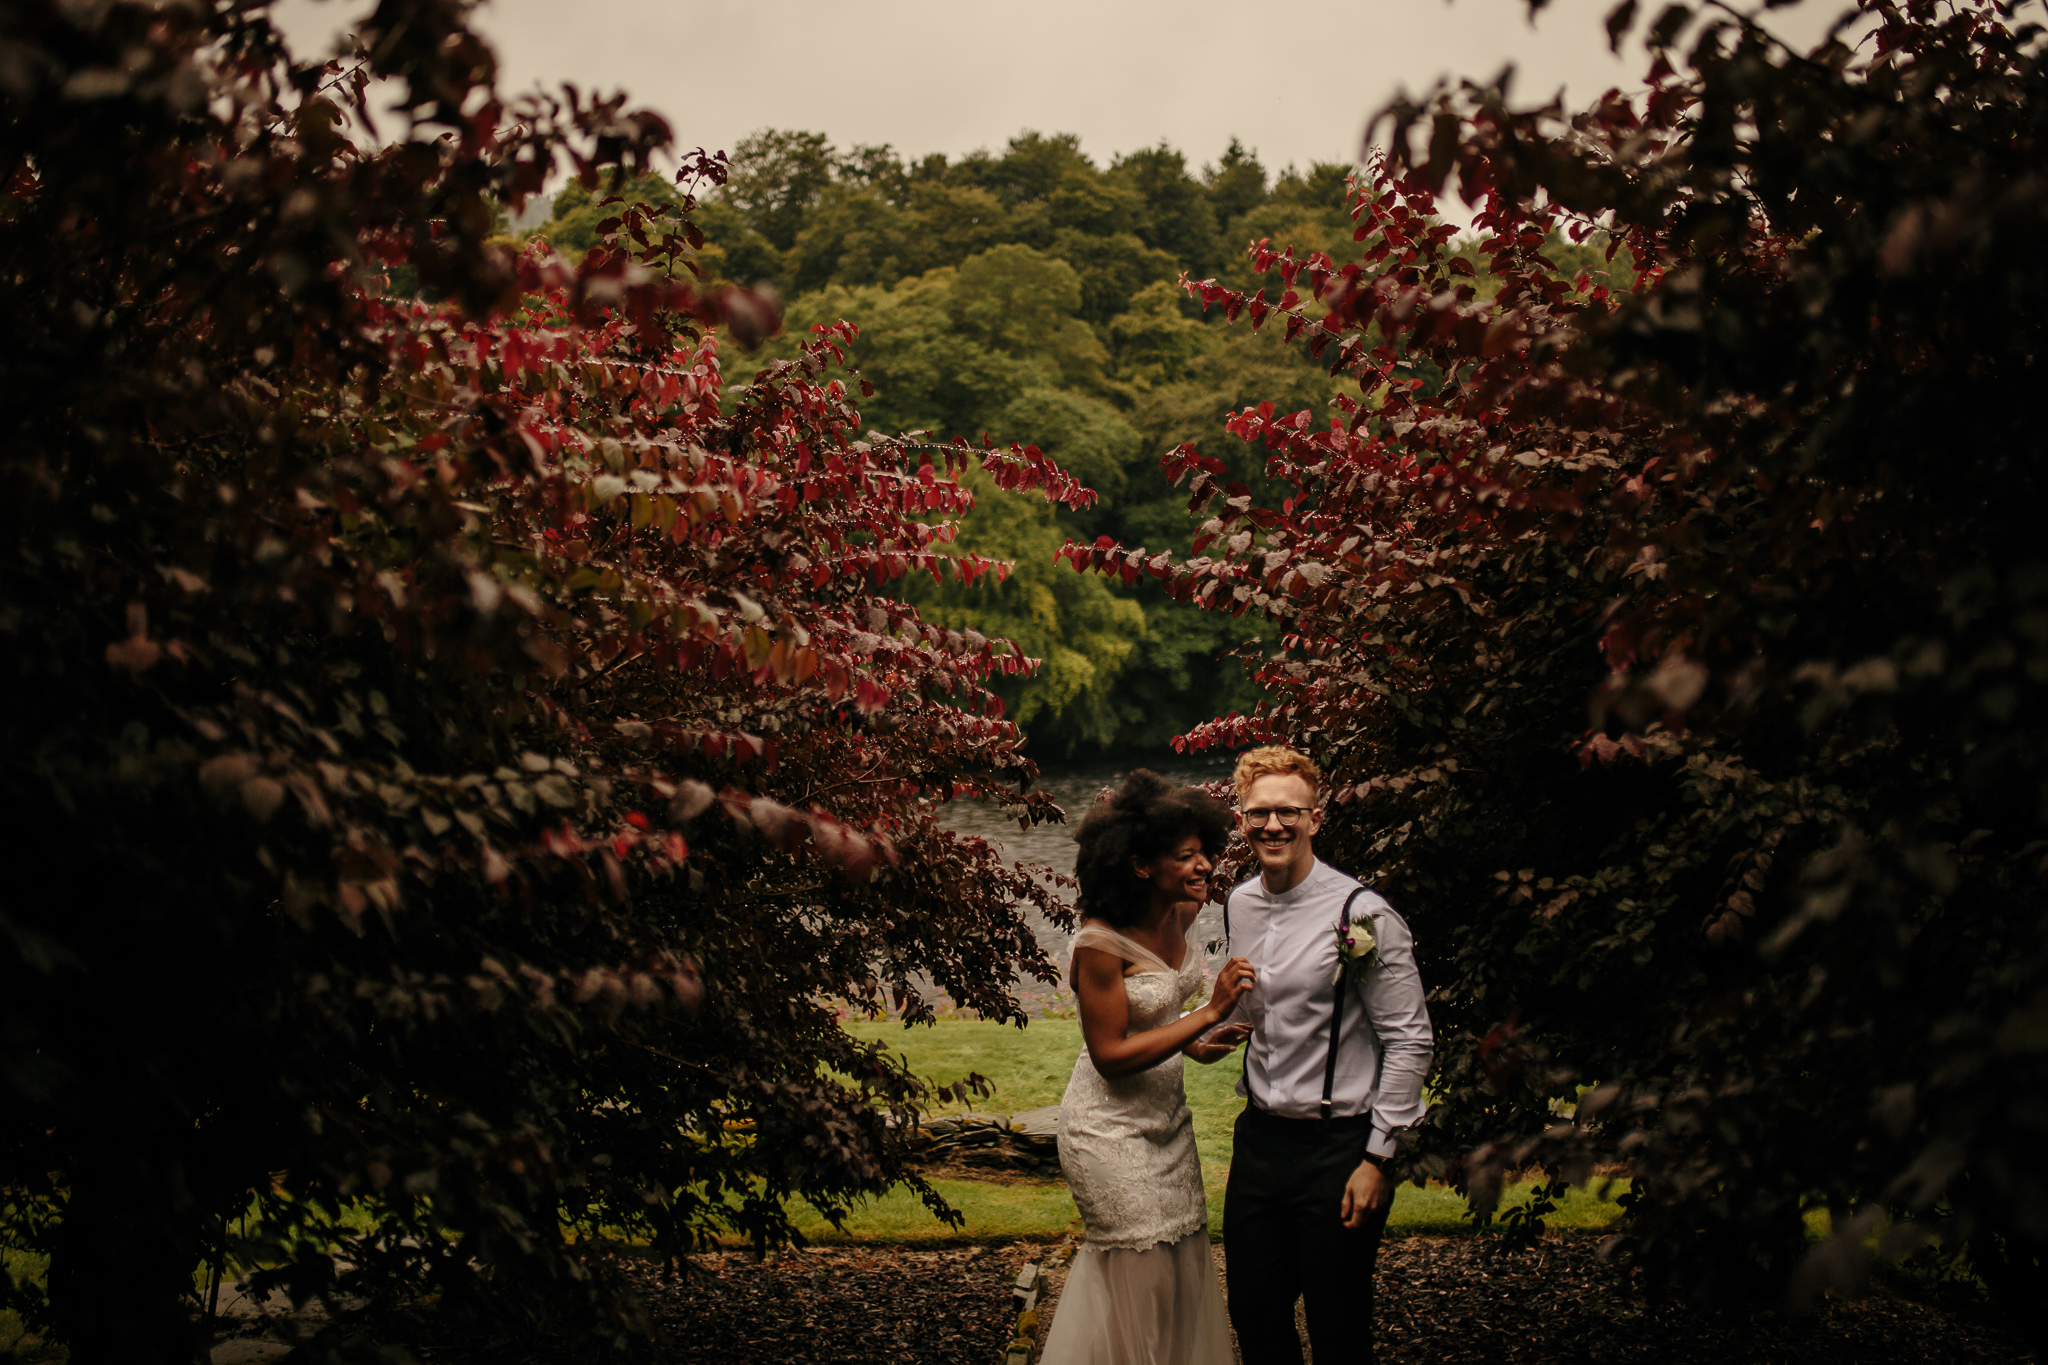 Victoria & Jamie - WeddingsbyQay - Wedding Photographer (149 of 209).jpg